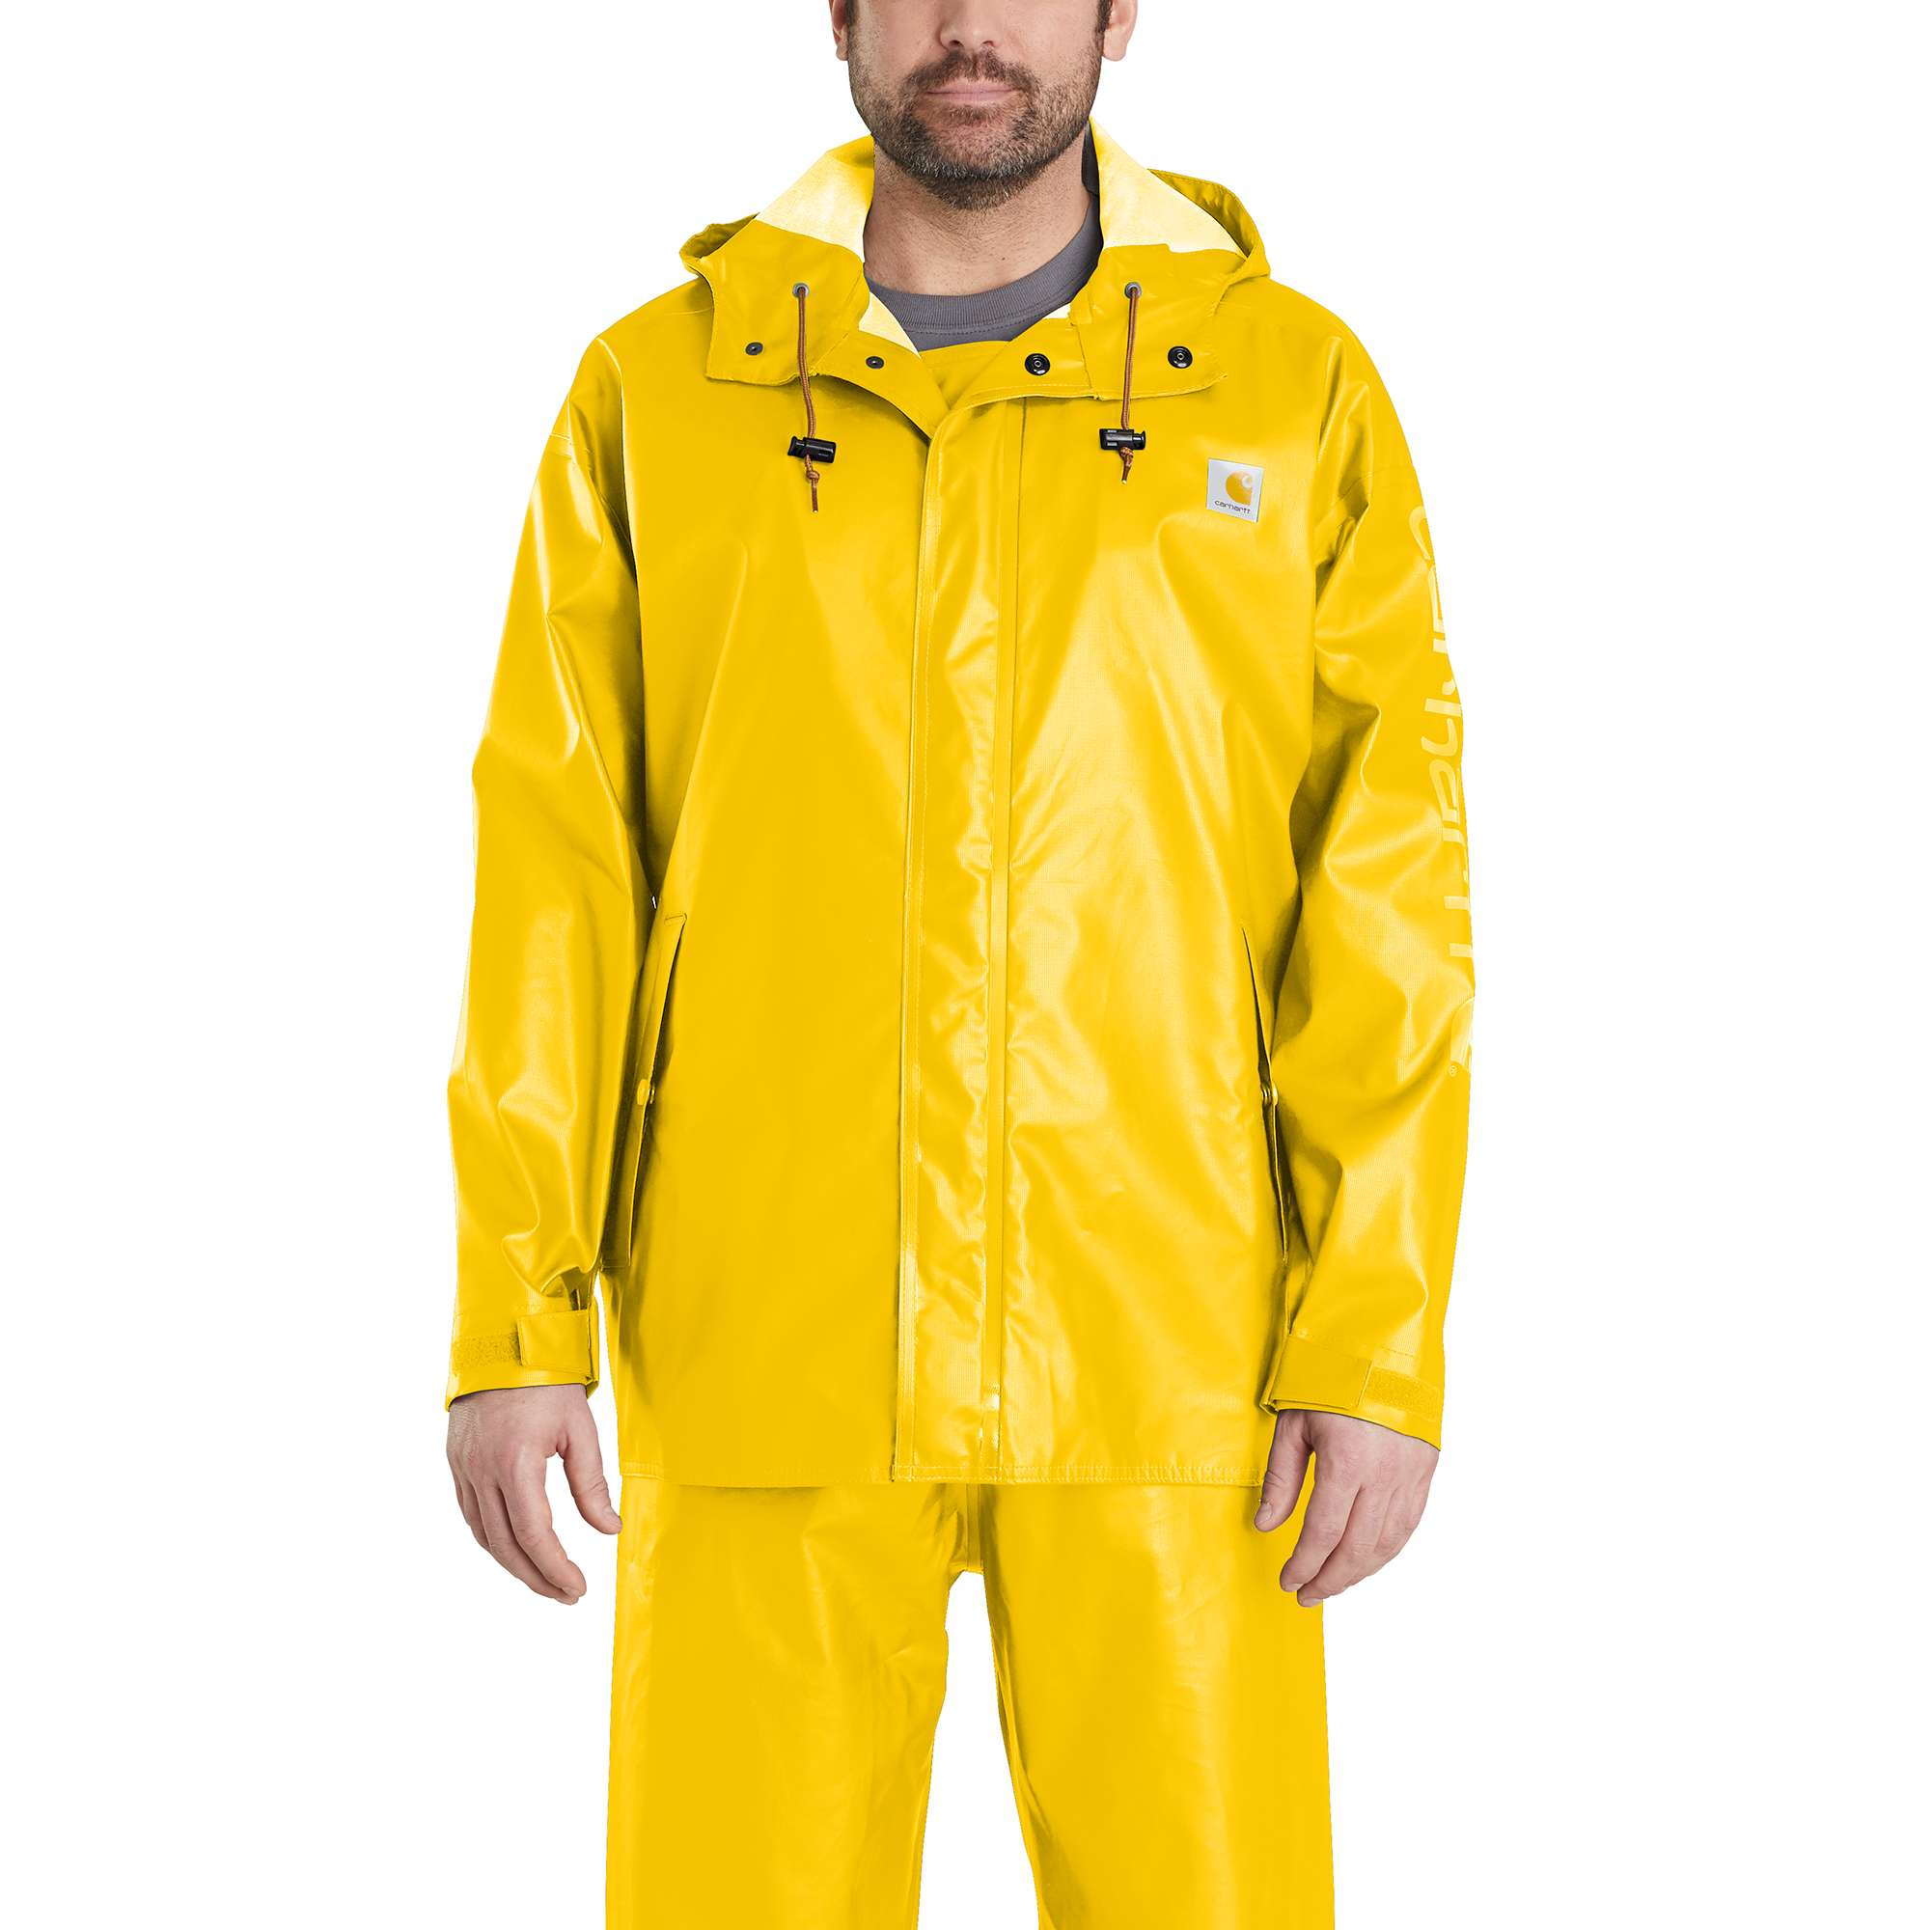 Lightweight Waterproof Rainstorm Jacket